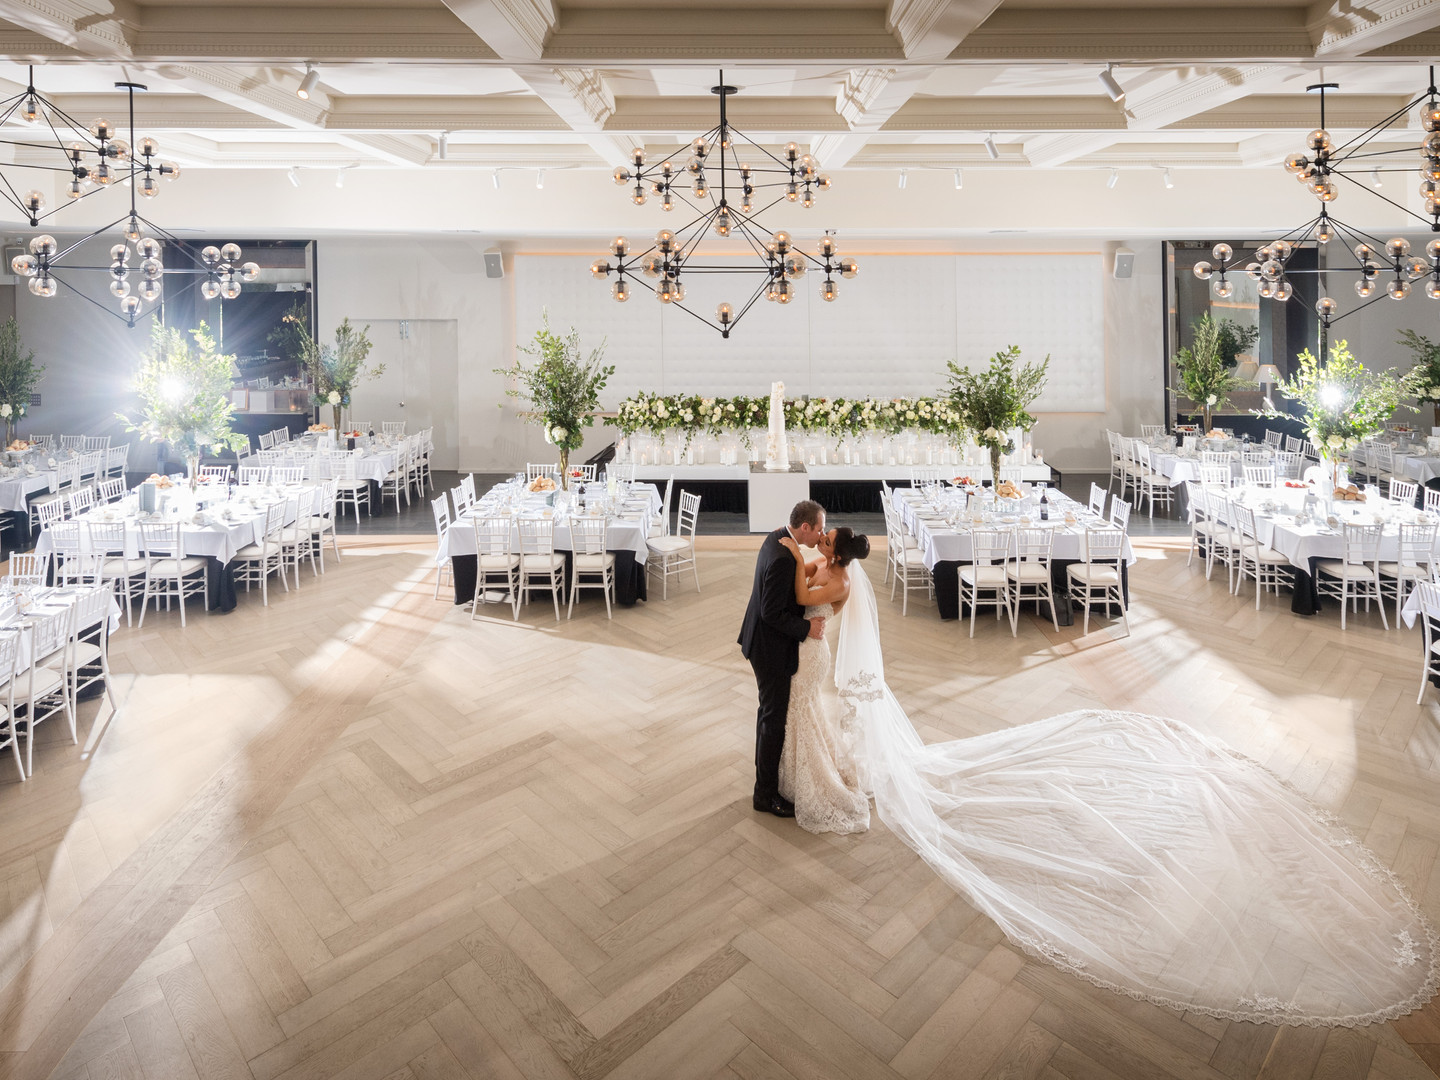 Kissing In Ballroom | Meadowbank Estate | Wedding Venue | Campbellfield